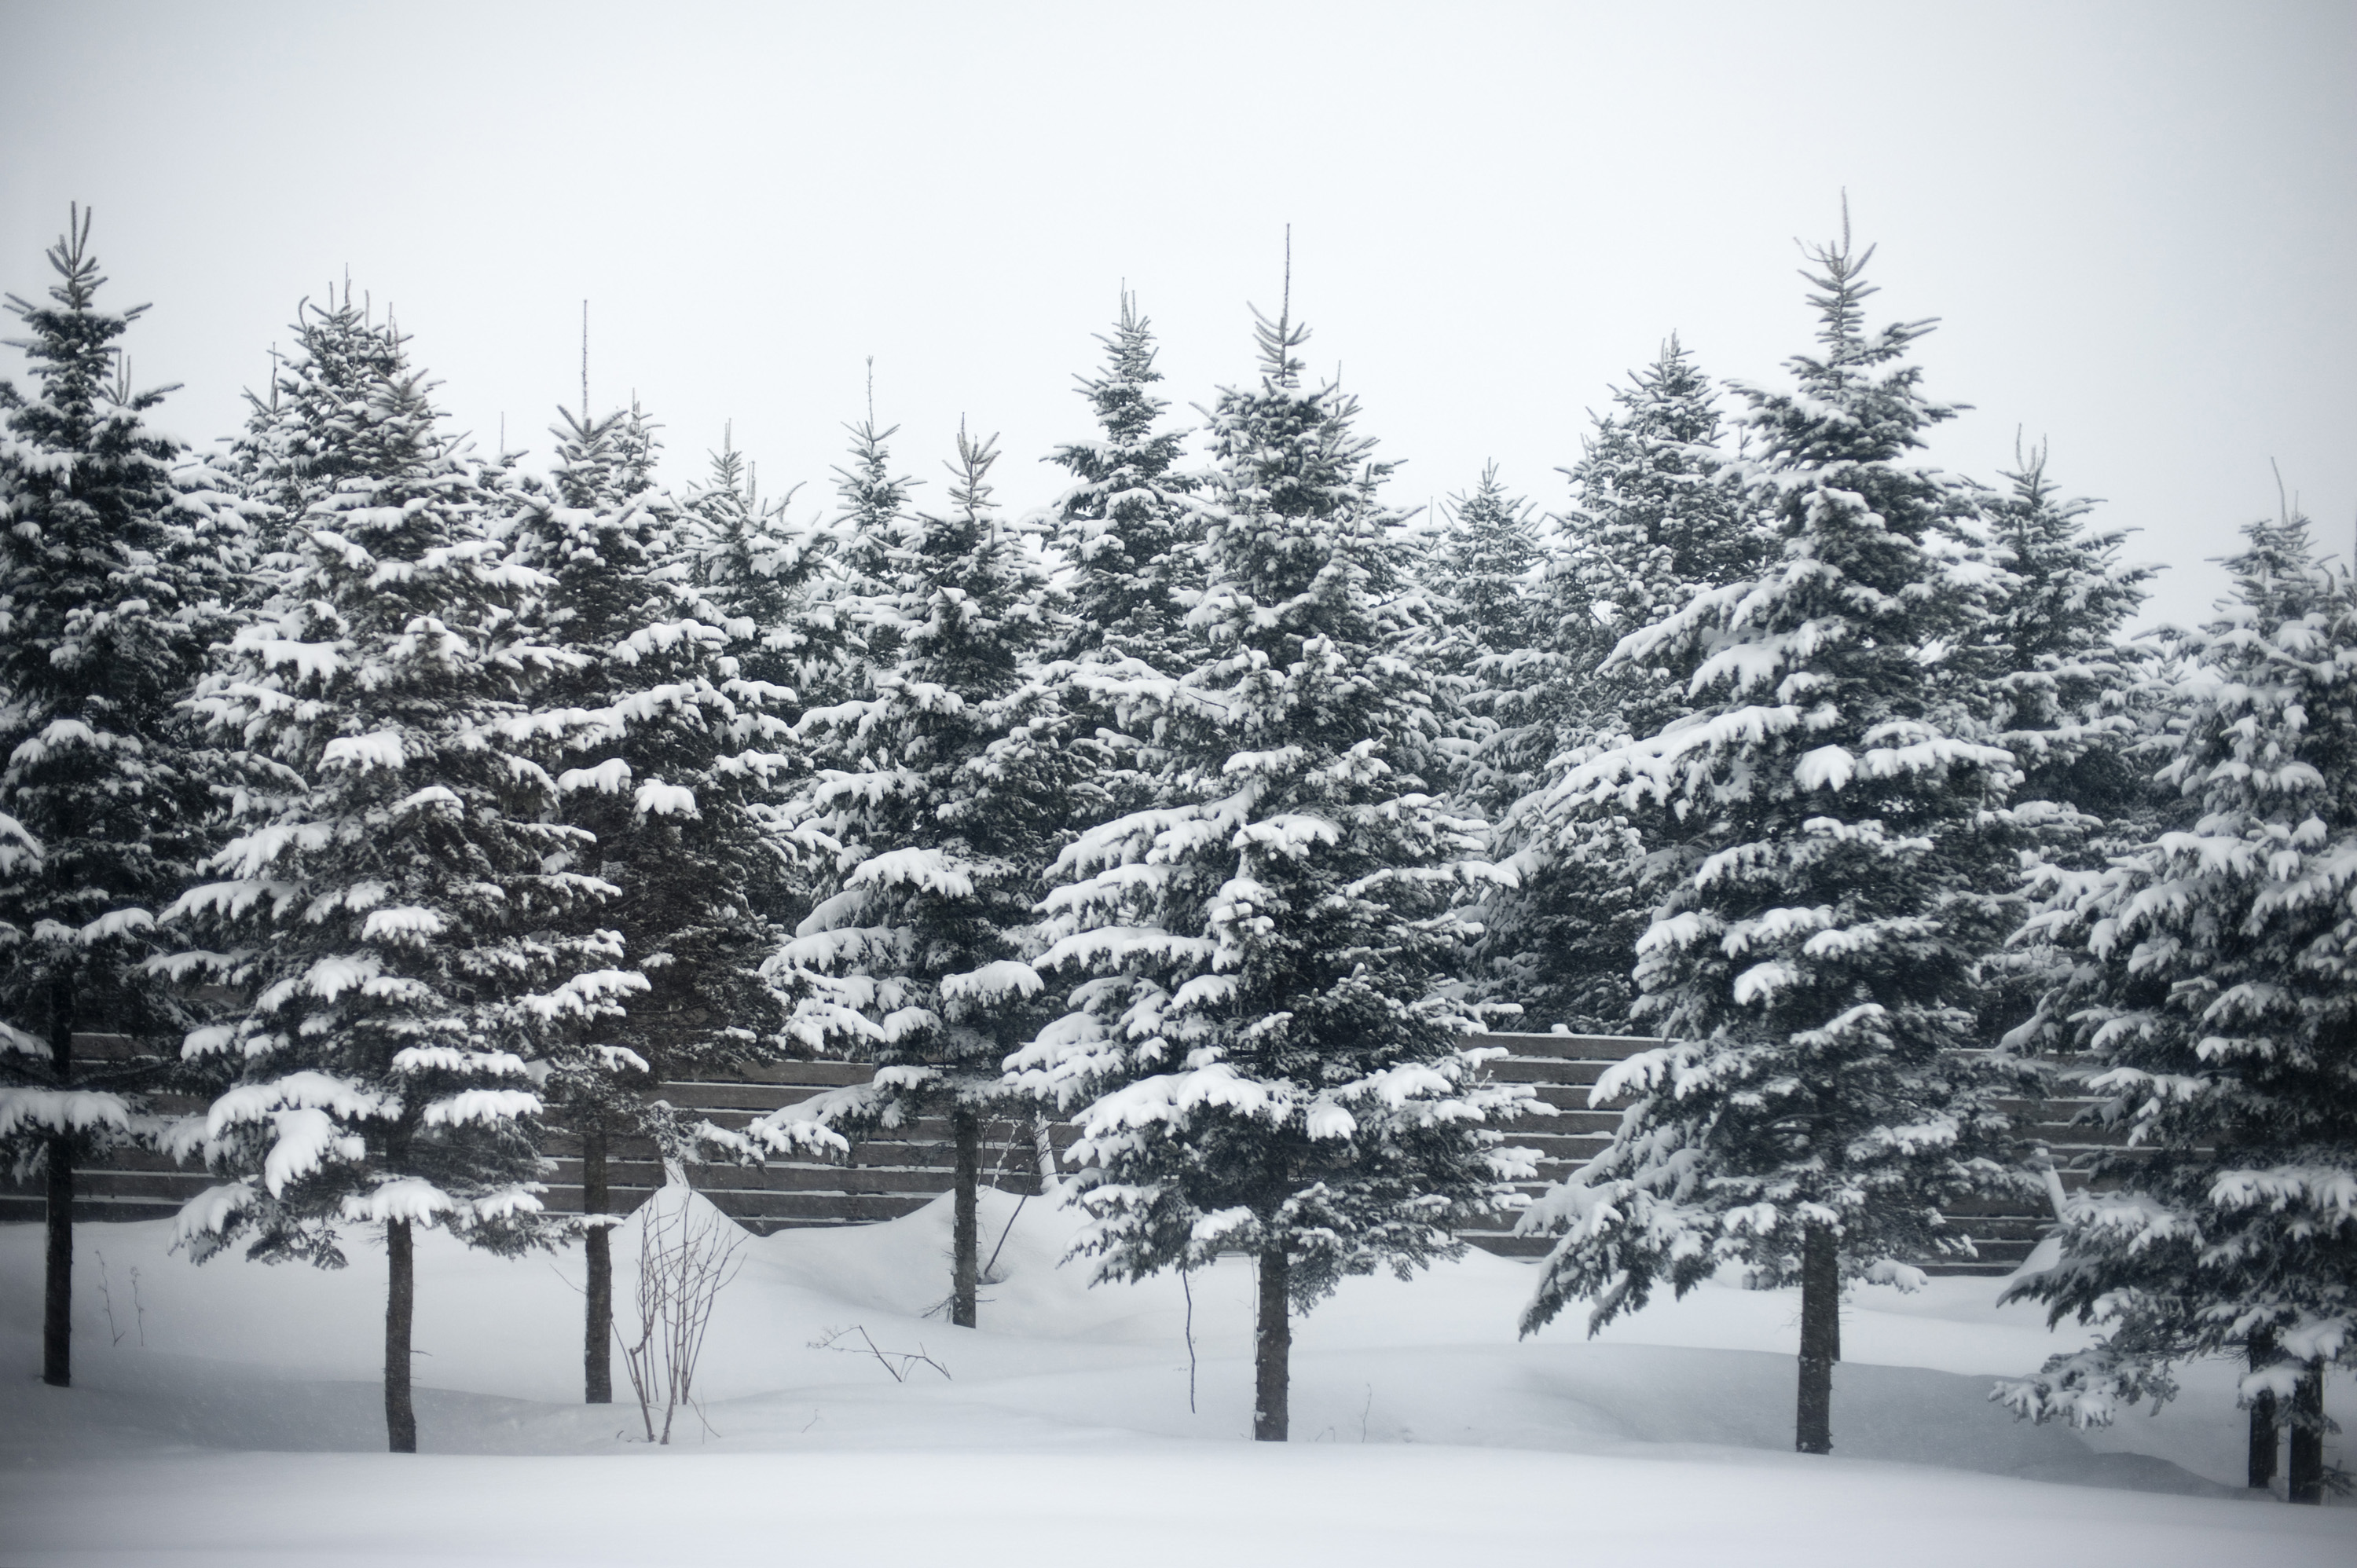 Snow pine trees snow pine trees - Images of pine trees in snow ...